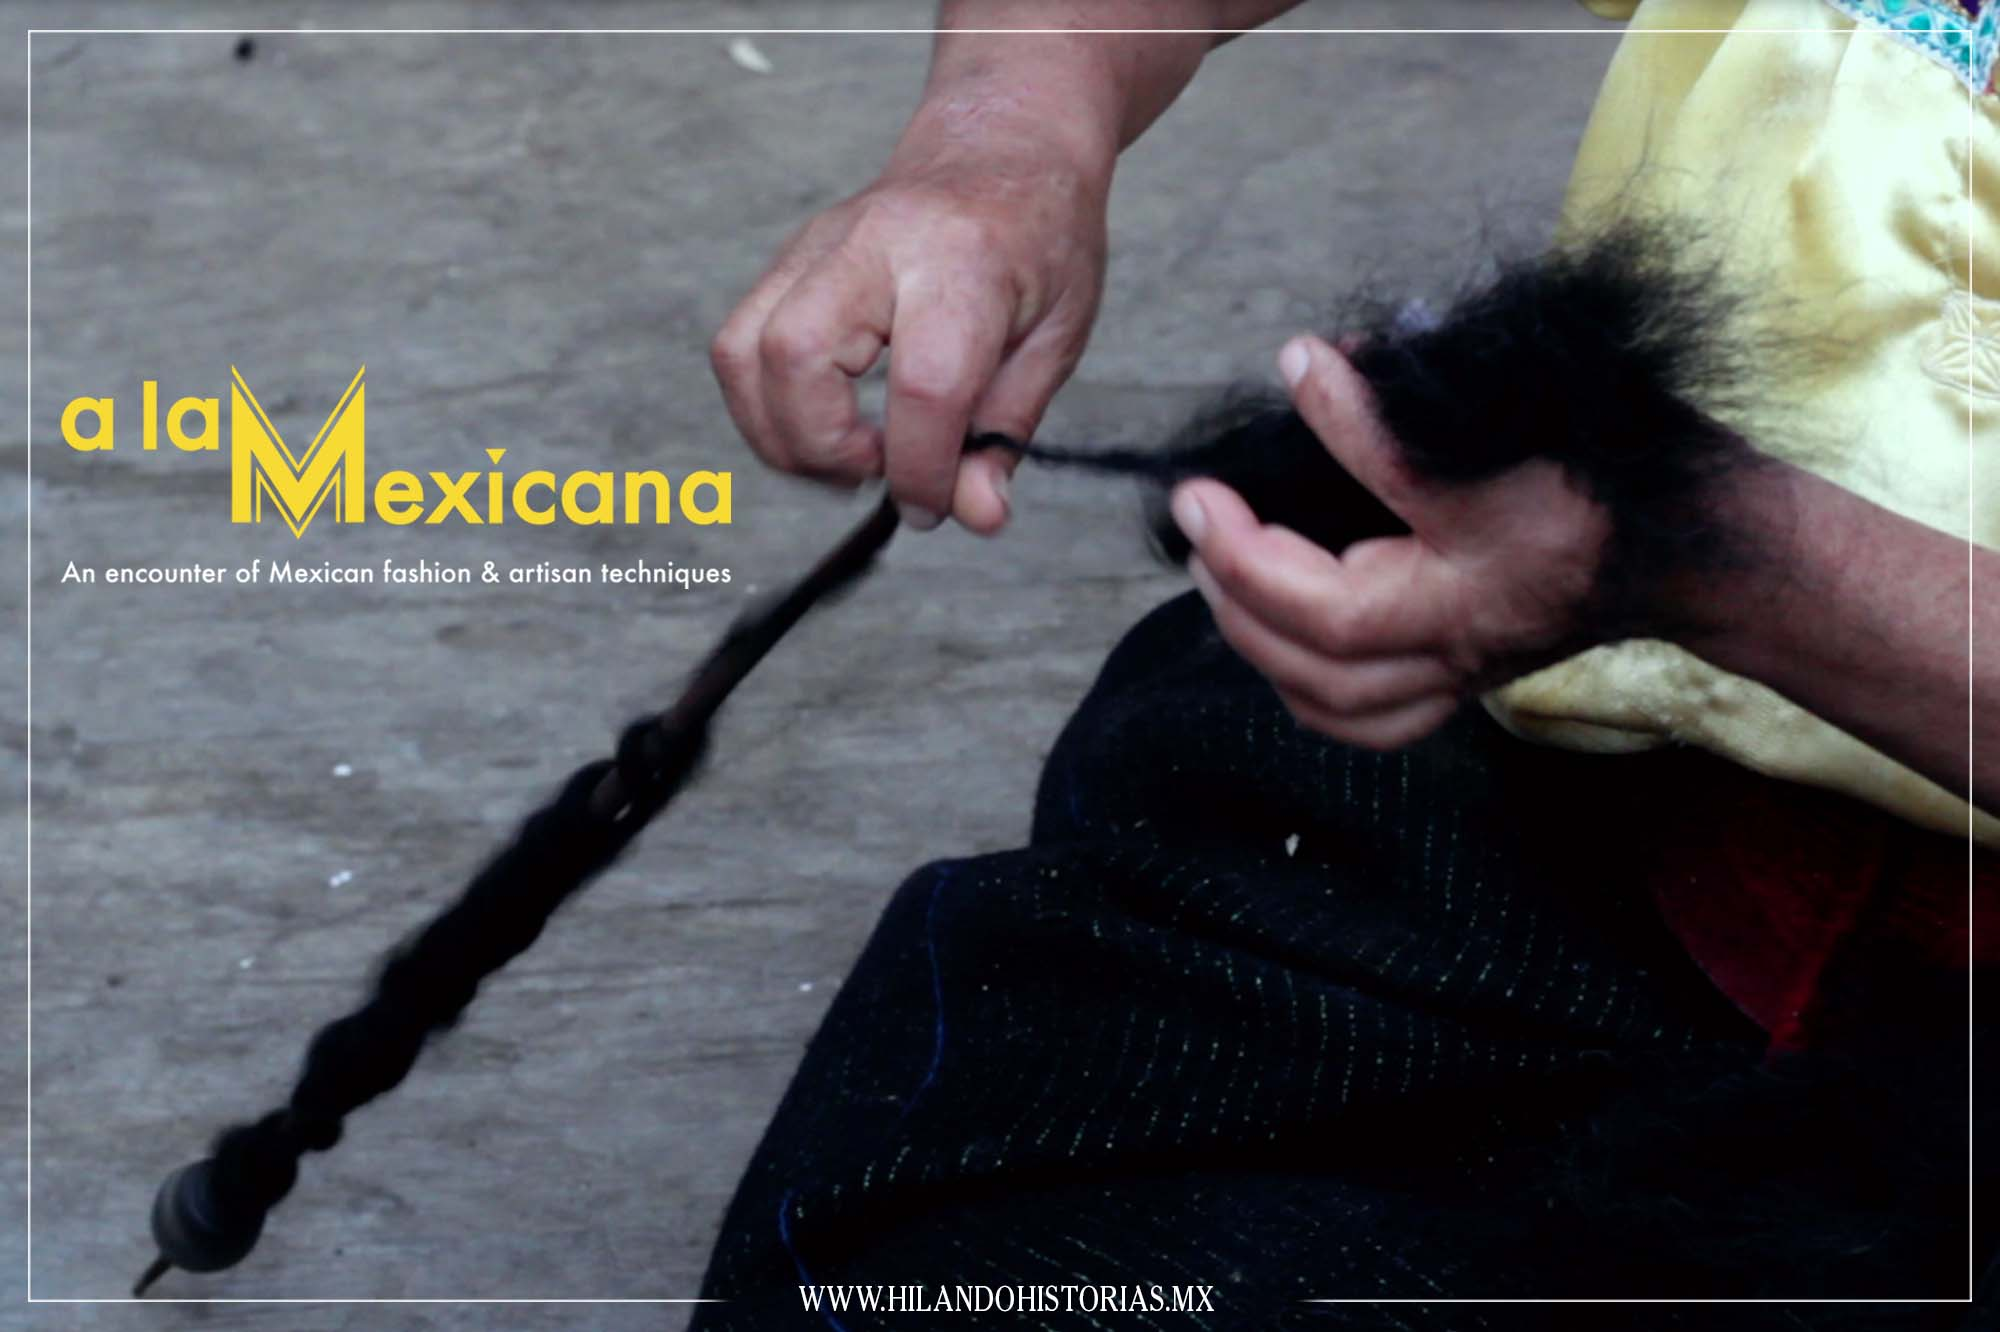 A LA MEXICANA. An encounter of Mexican fashion & artisan techniques